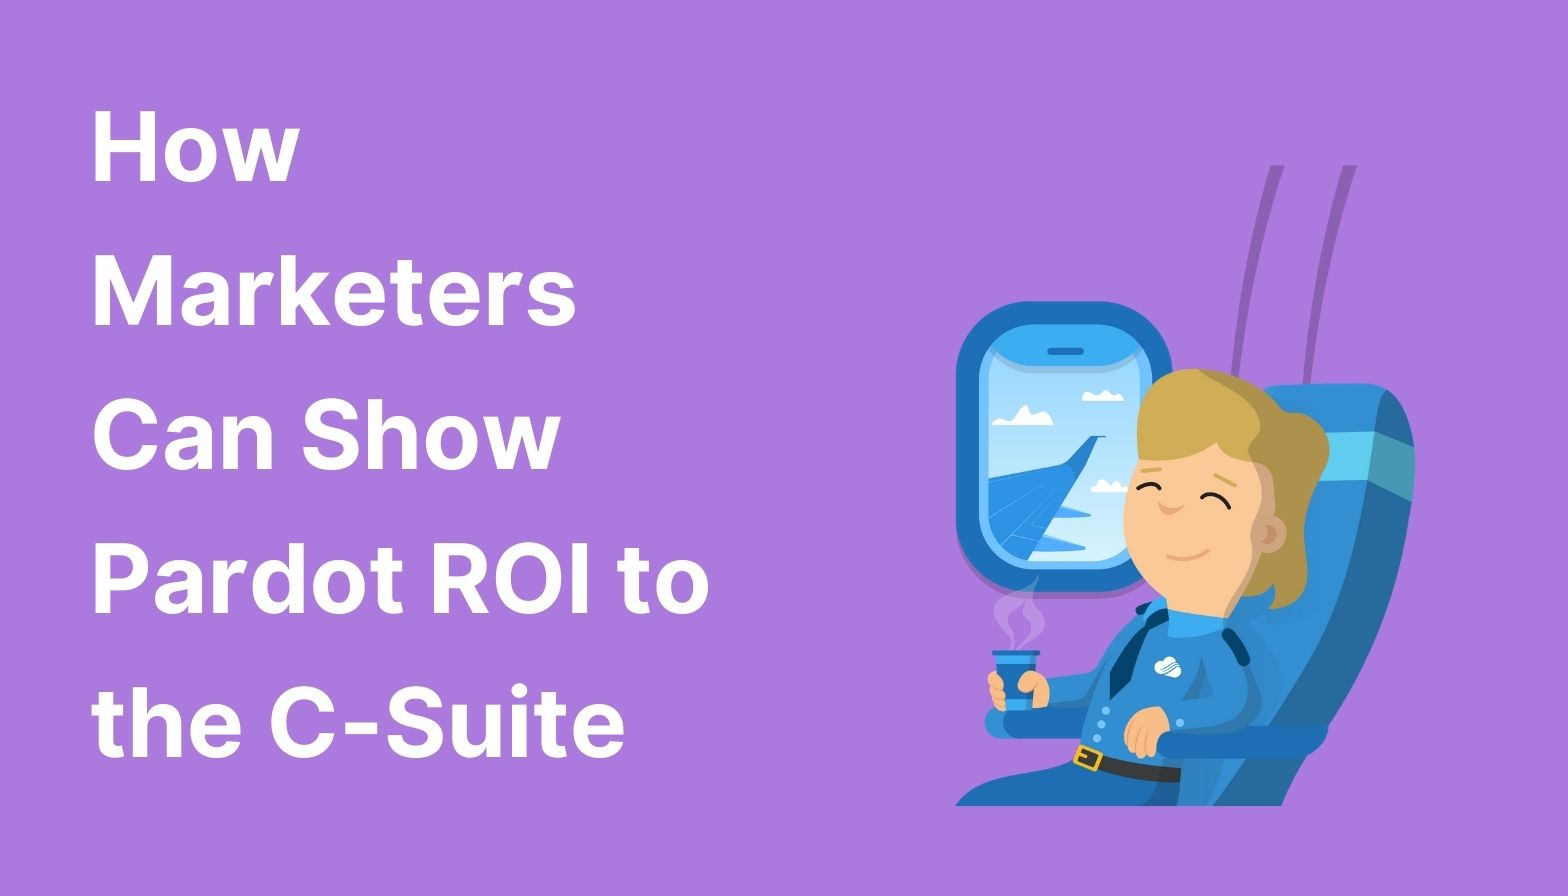 How Marketers Can Show Pardot ROI to the C-Suite